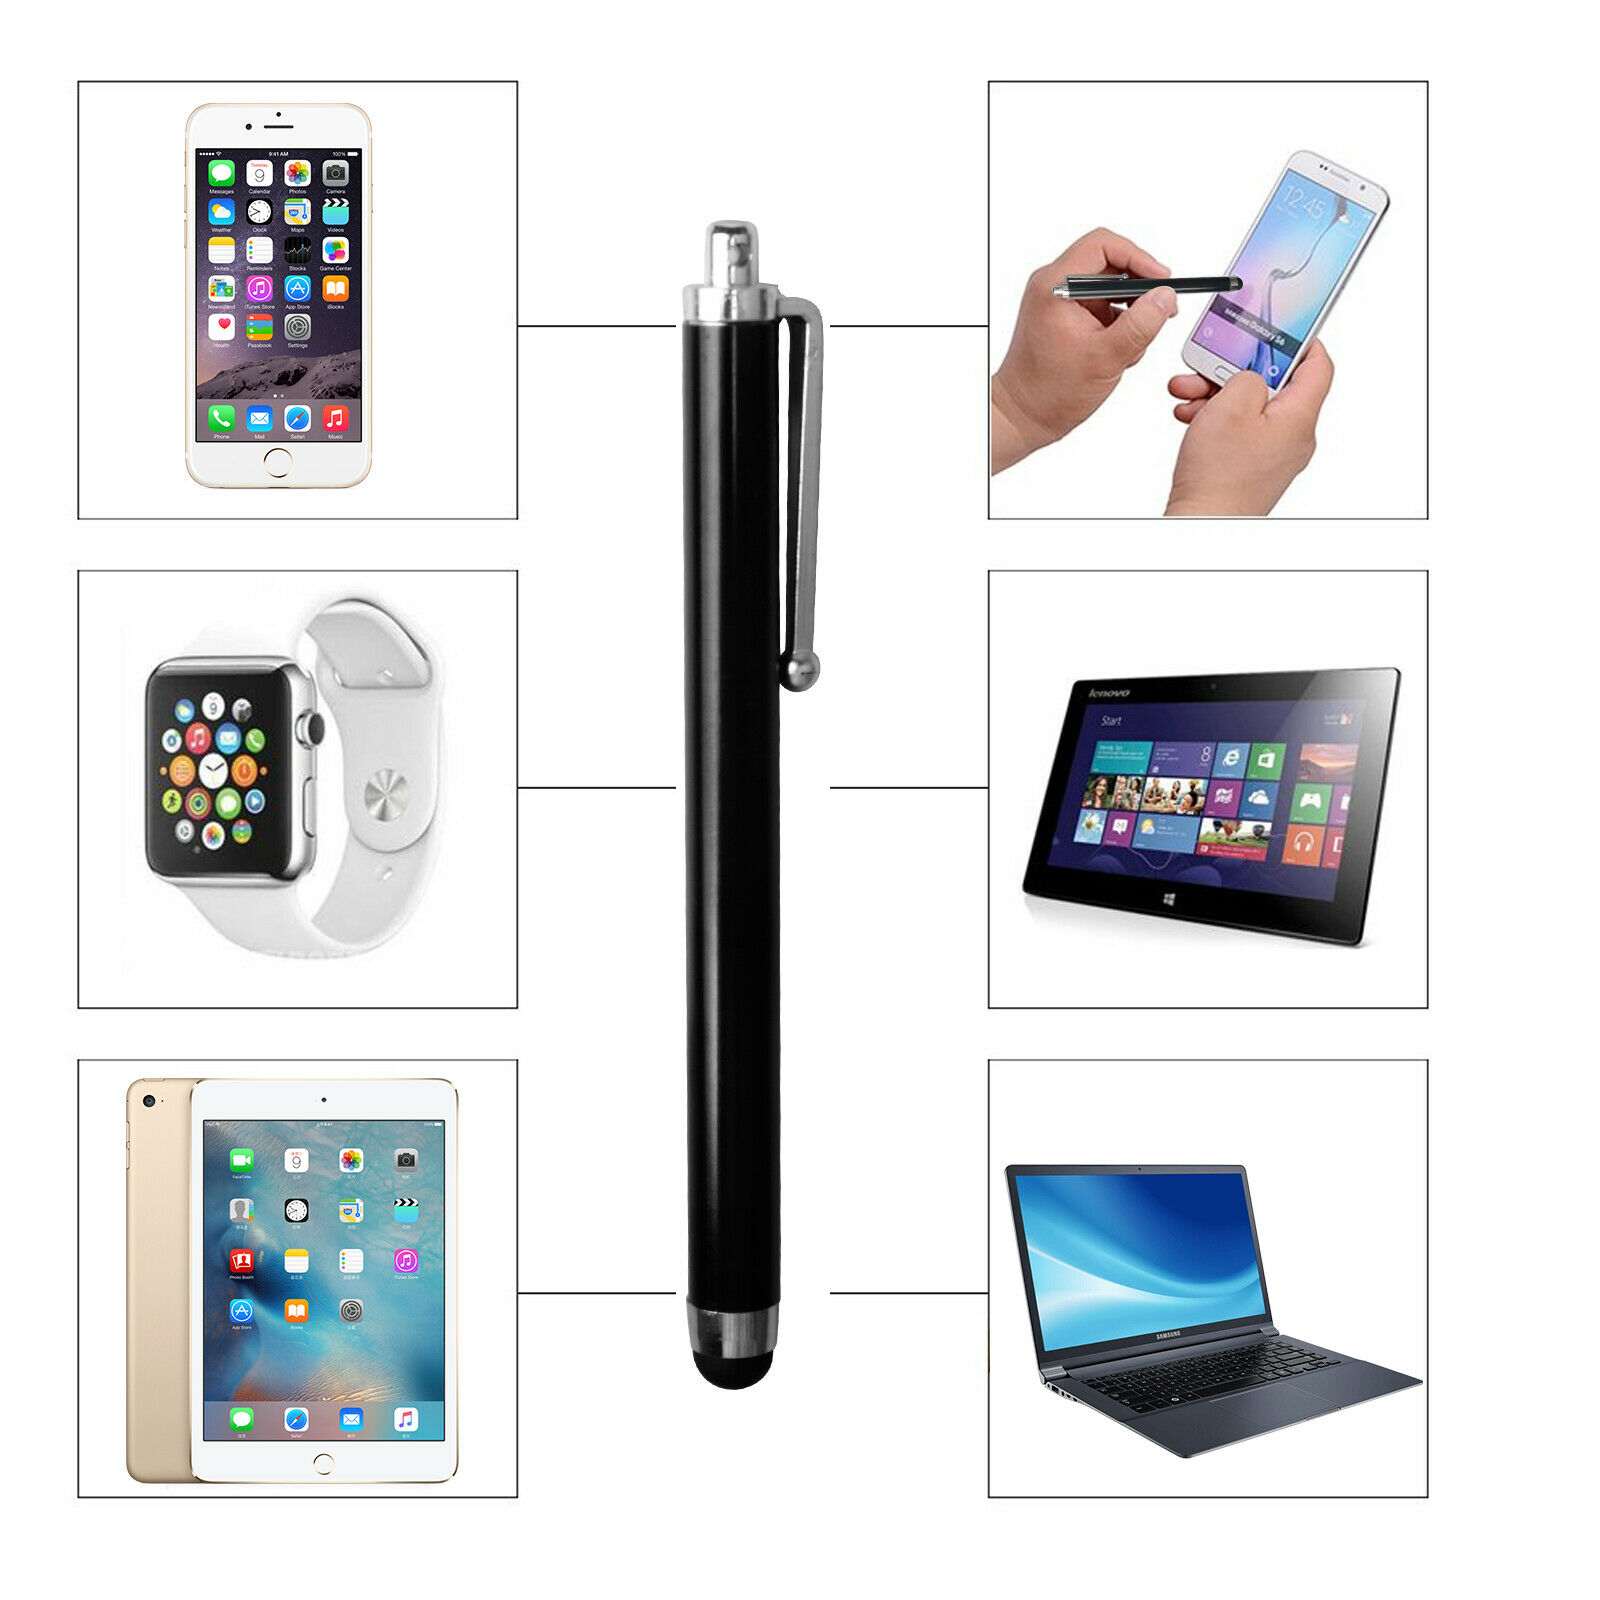 For Samsung Galaxy Note 2 N7100 S PEN TOUCH SCREEN STYLUS ERASER #6HH